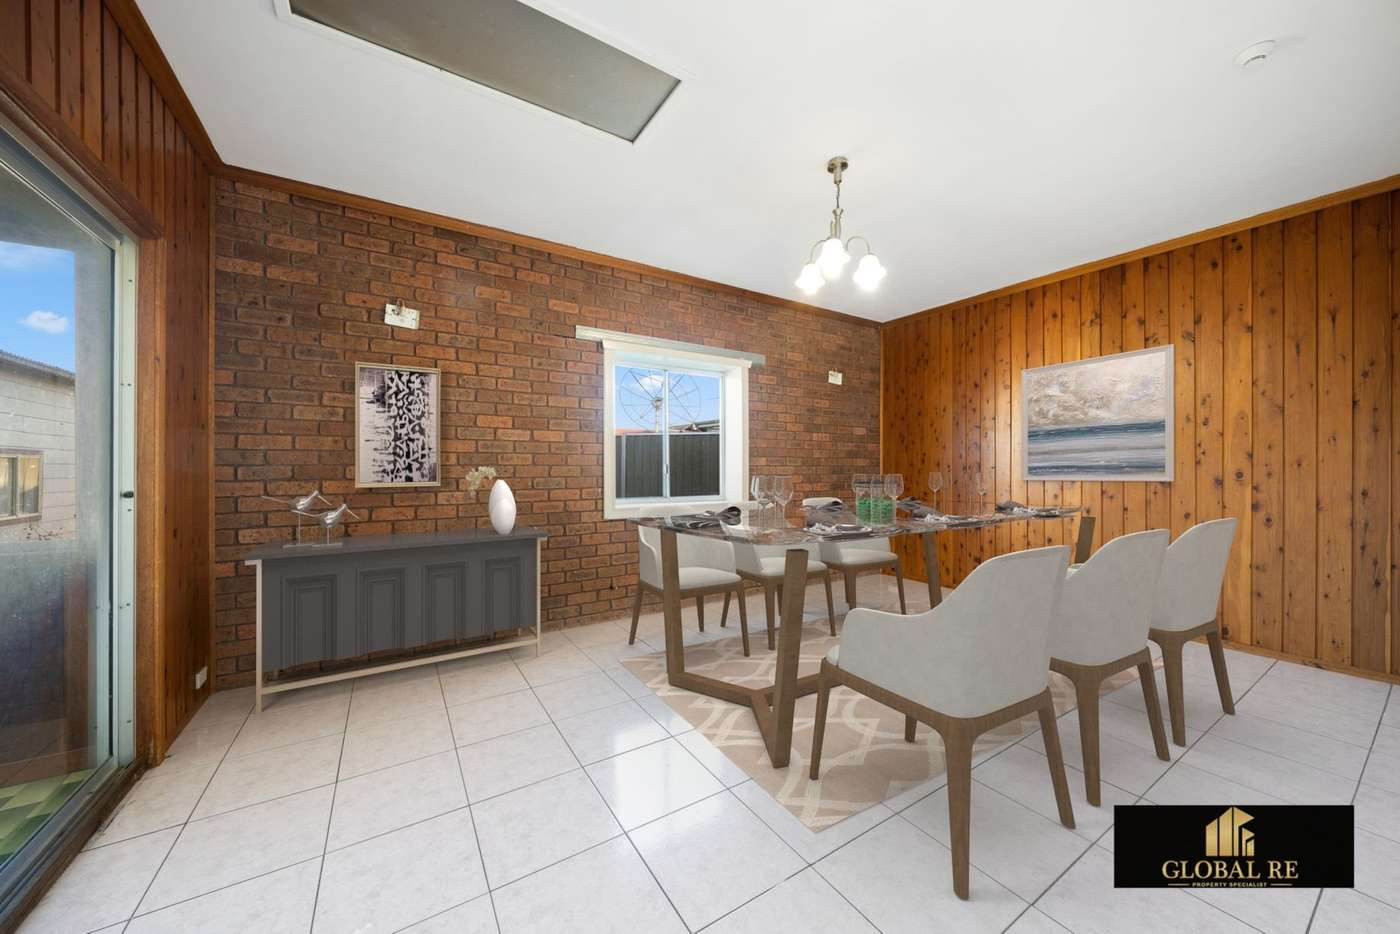 Fifth view of Homely house listing, 143 Avoca Rd, Canley Heights NSW 2166